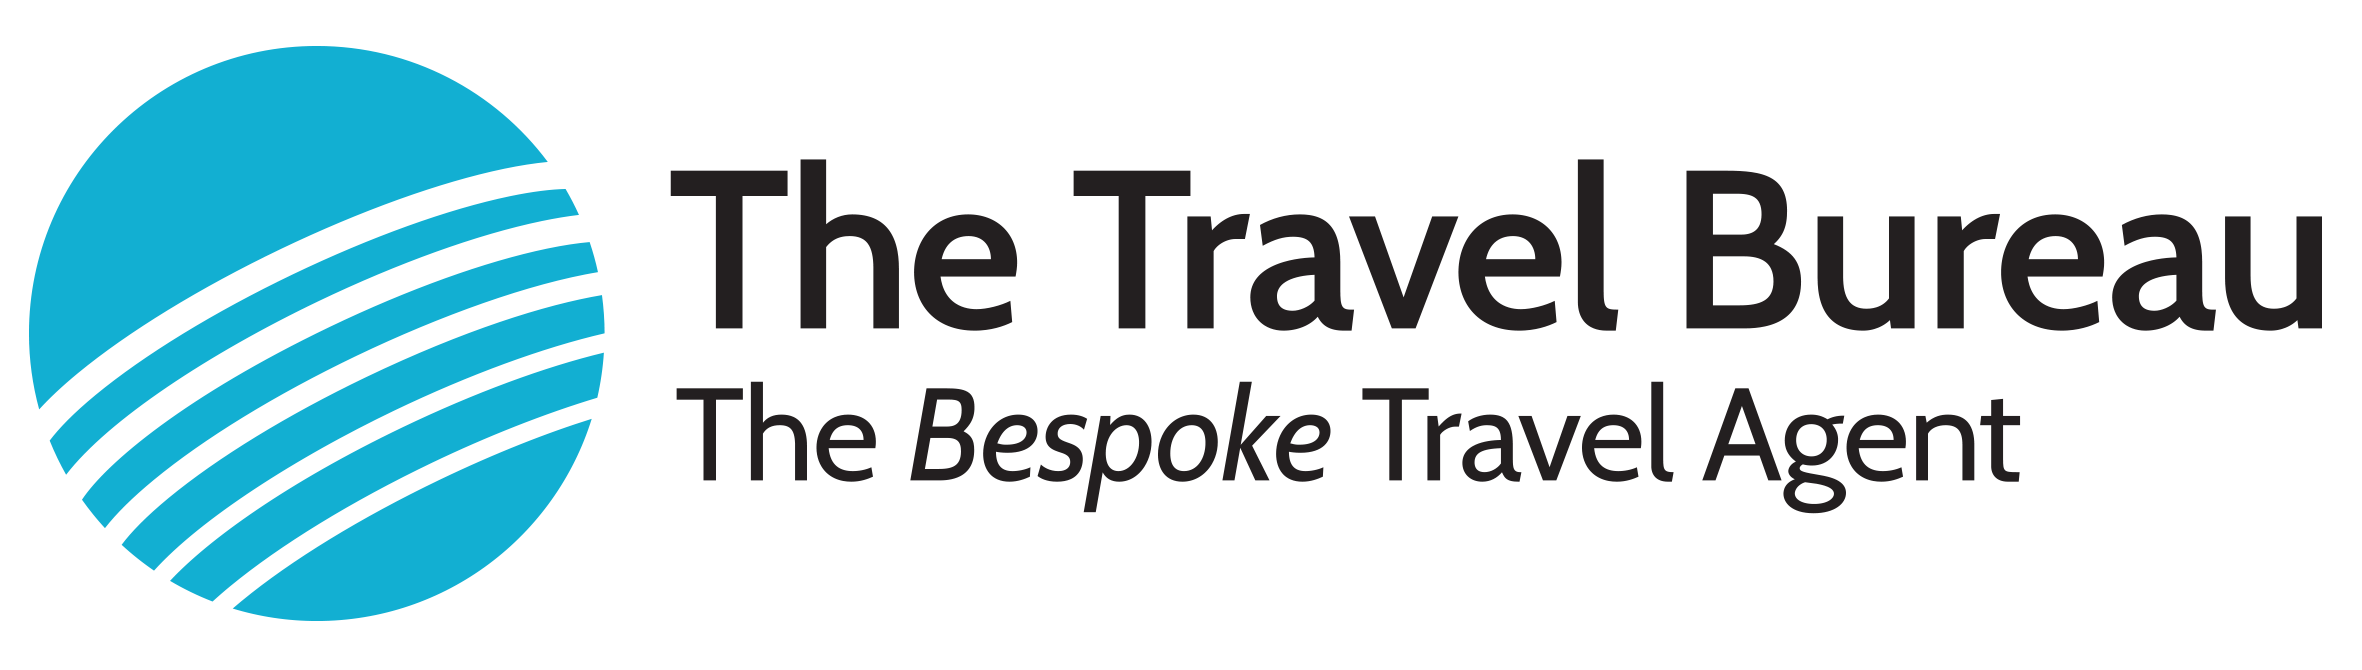 The Travel Bureau